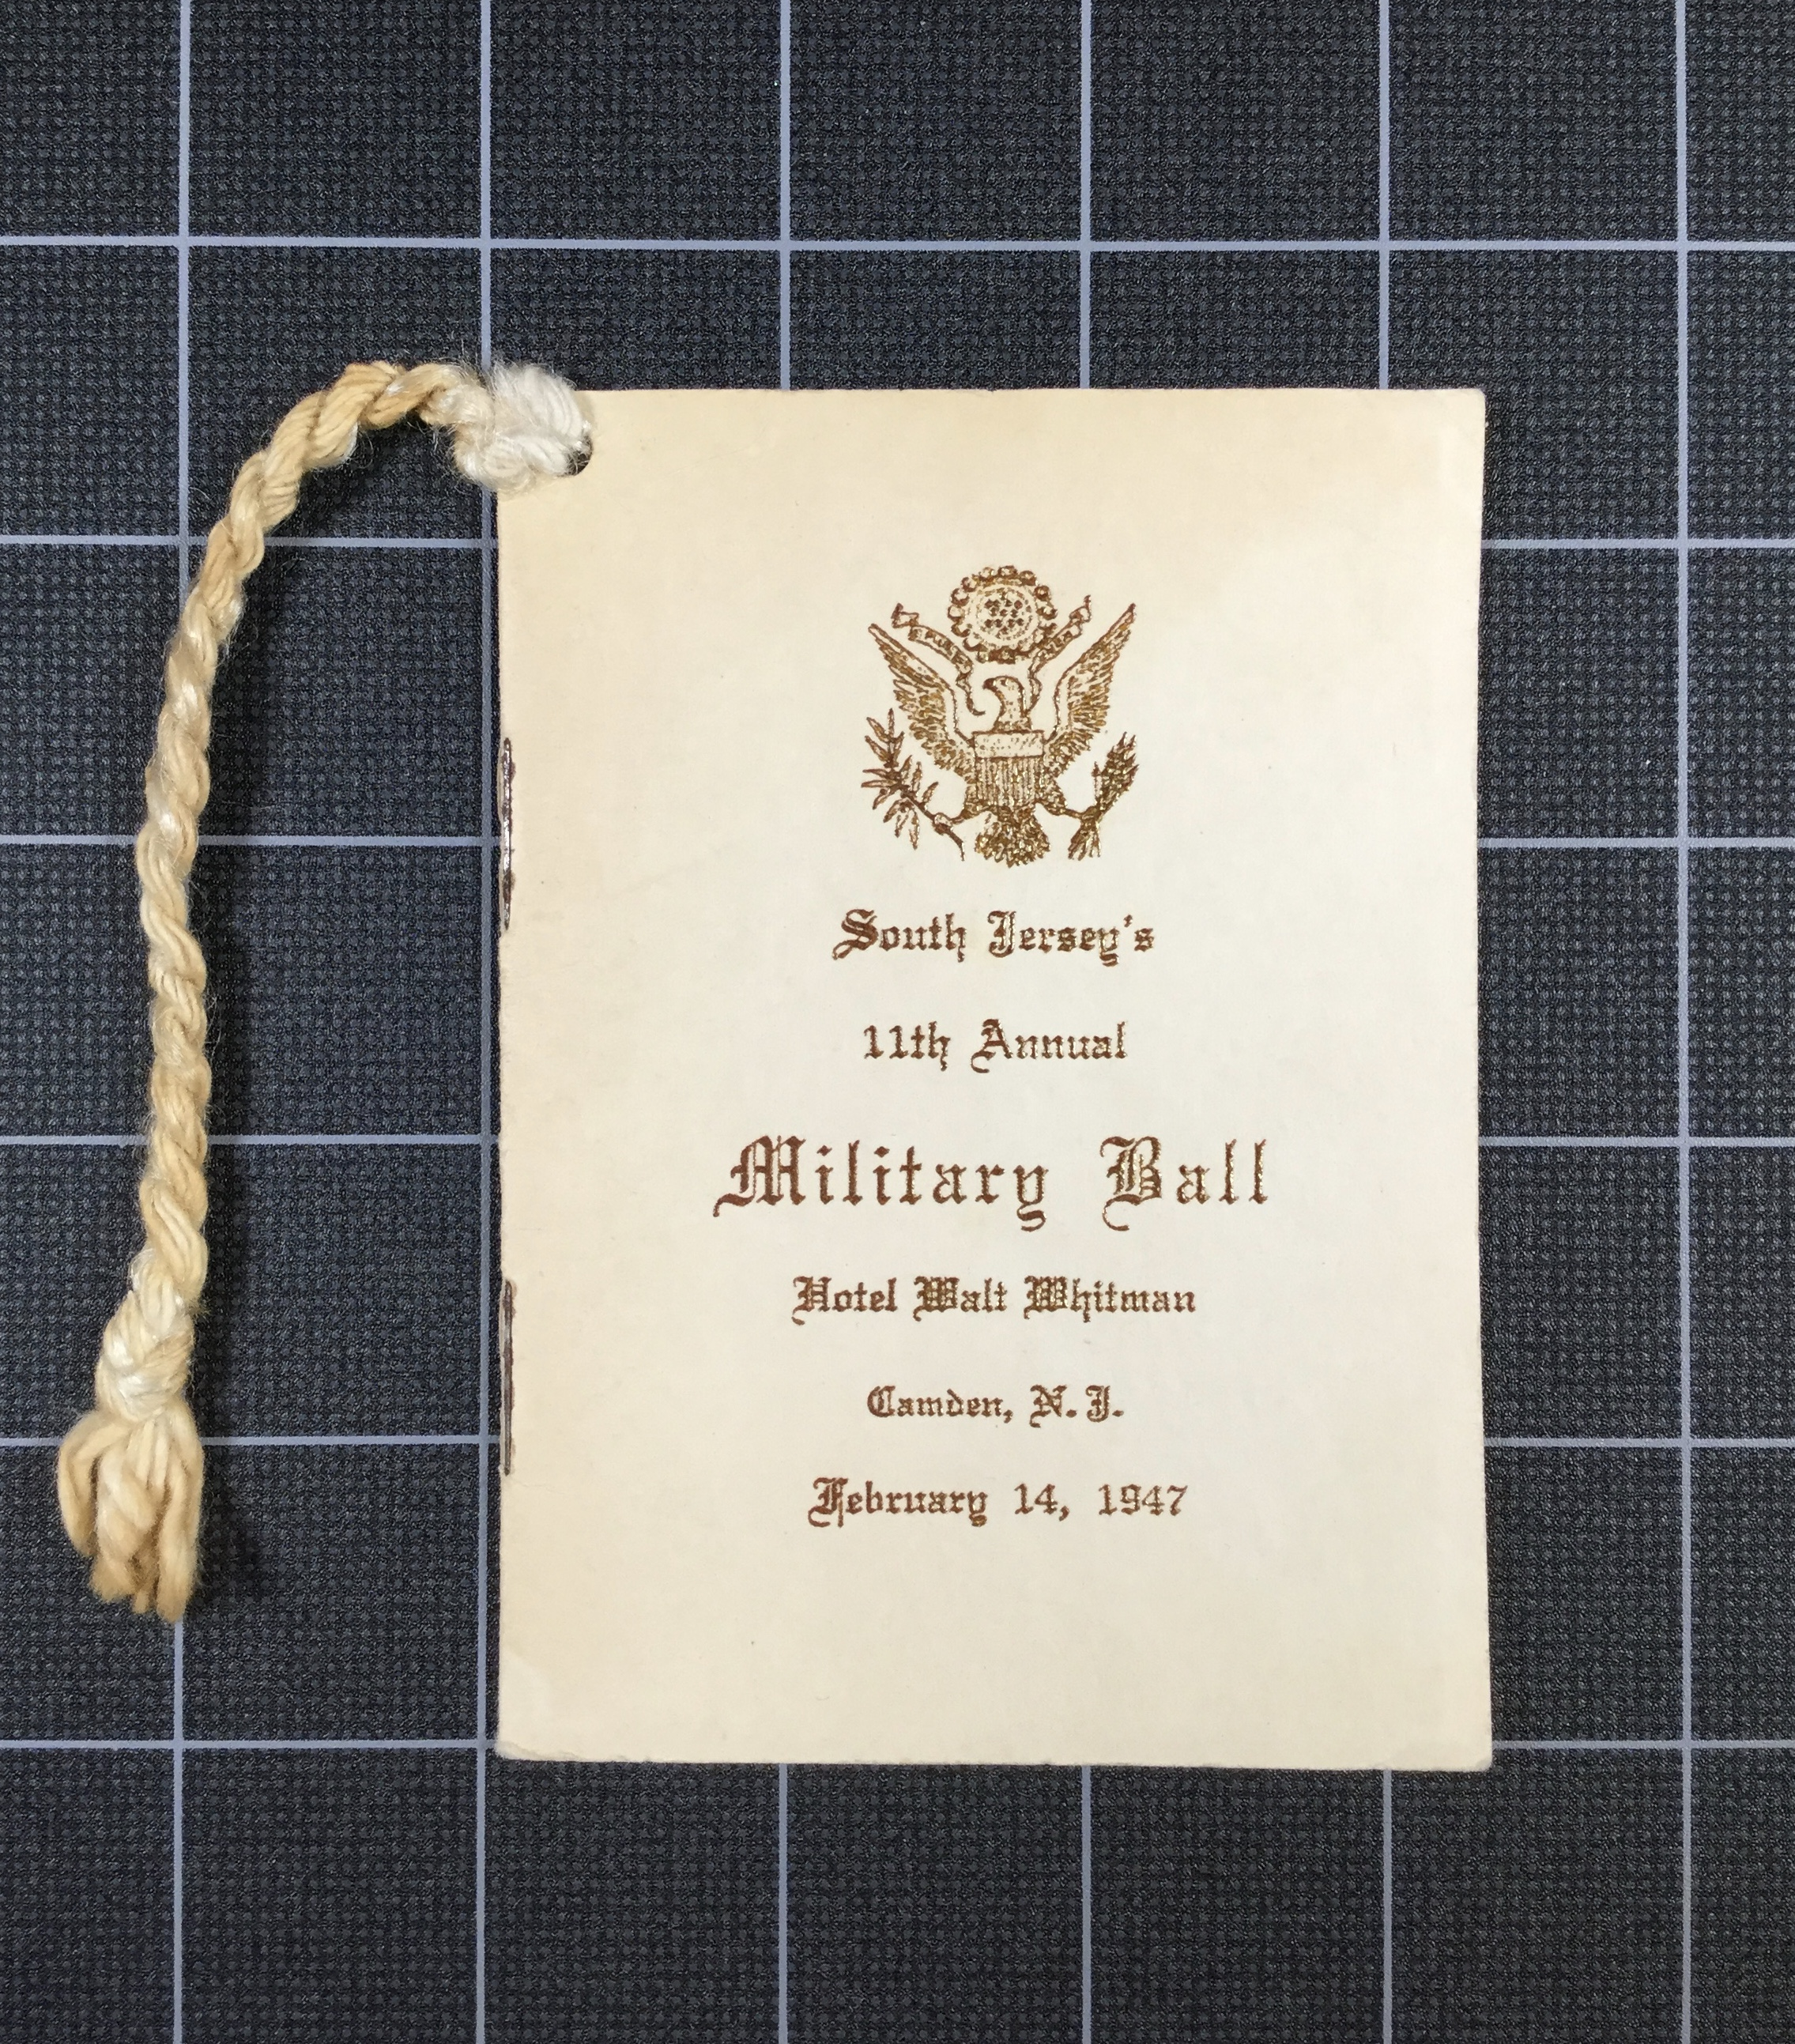 11th Annual Military Ball (1947)